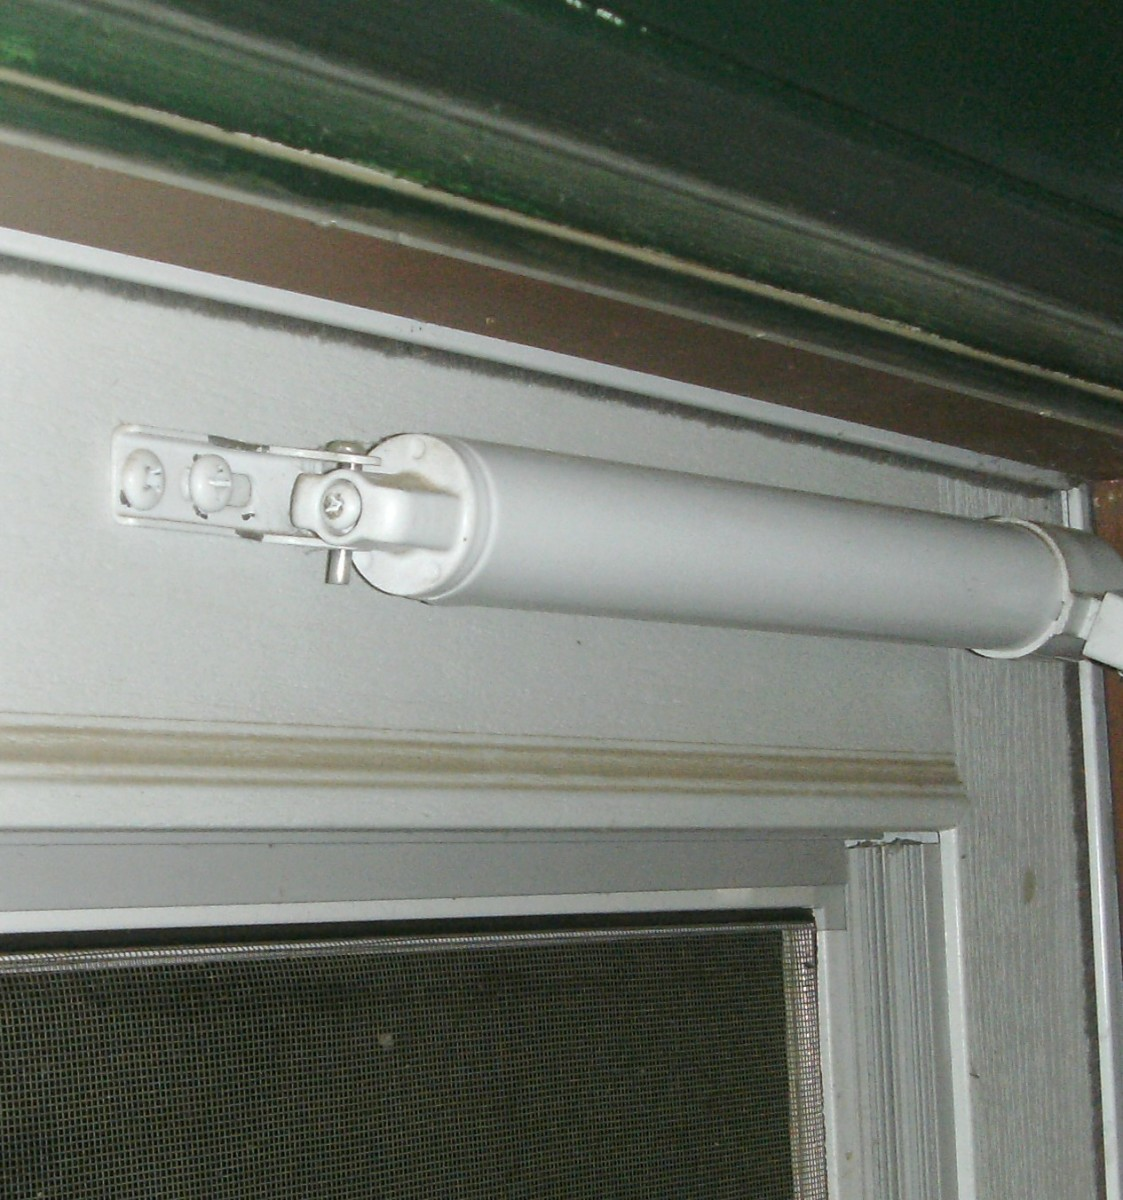 Storm Door Installation Instructions For Installing A